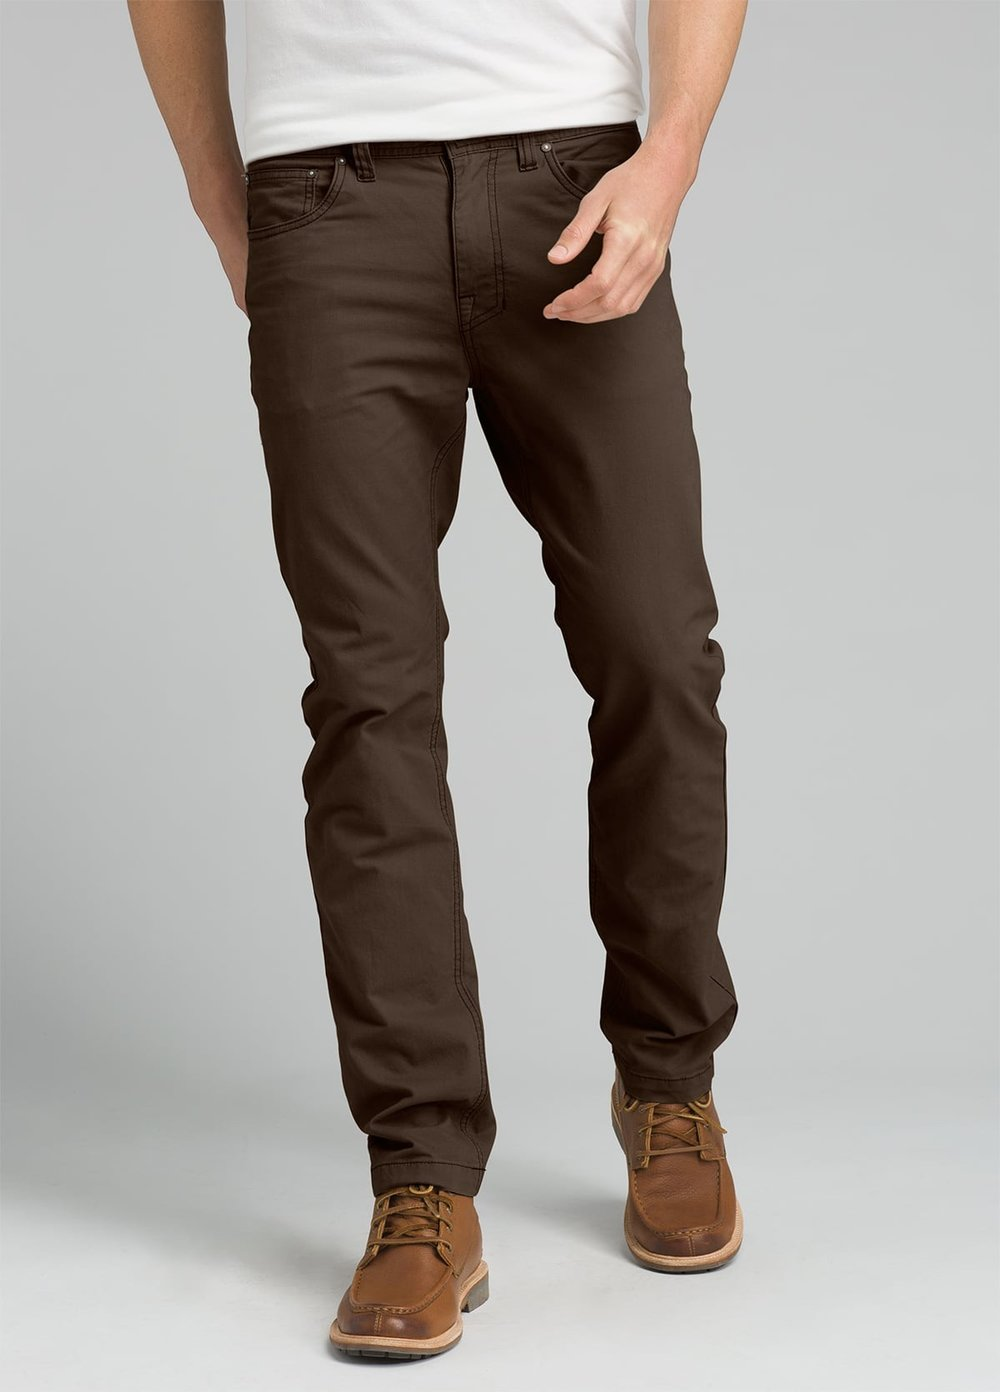 Prana  men's fair trade pants. So many colors and styles that we can mix and match with different button down shirts. Other great brands:  Thought  and  Toad&Co